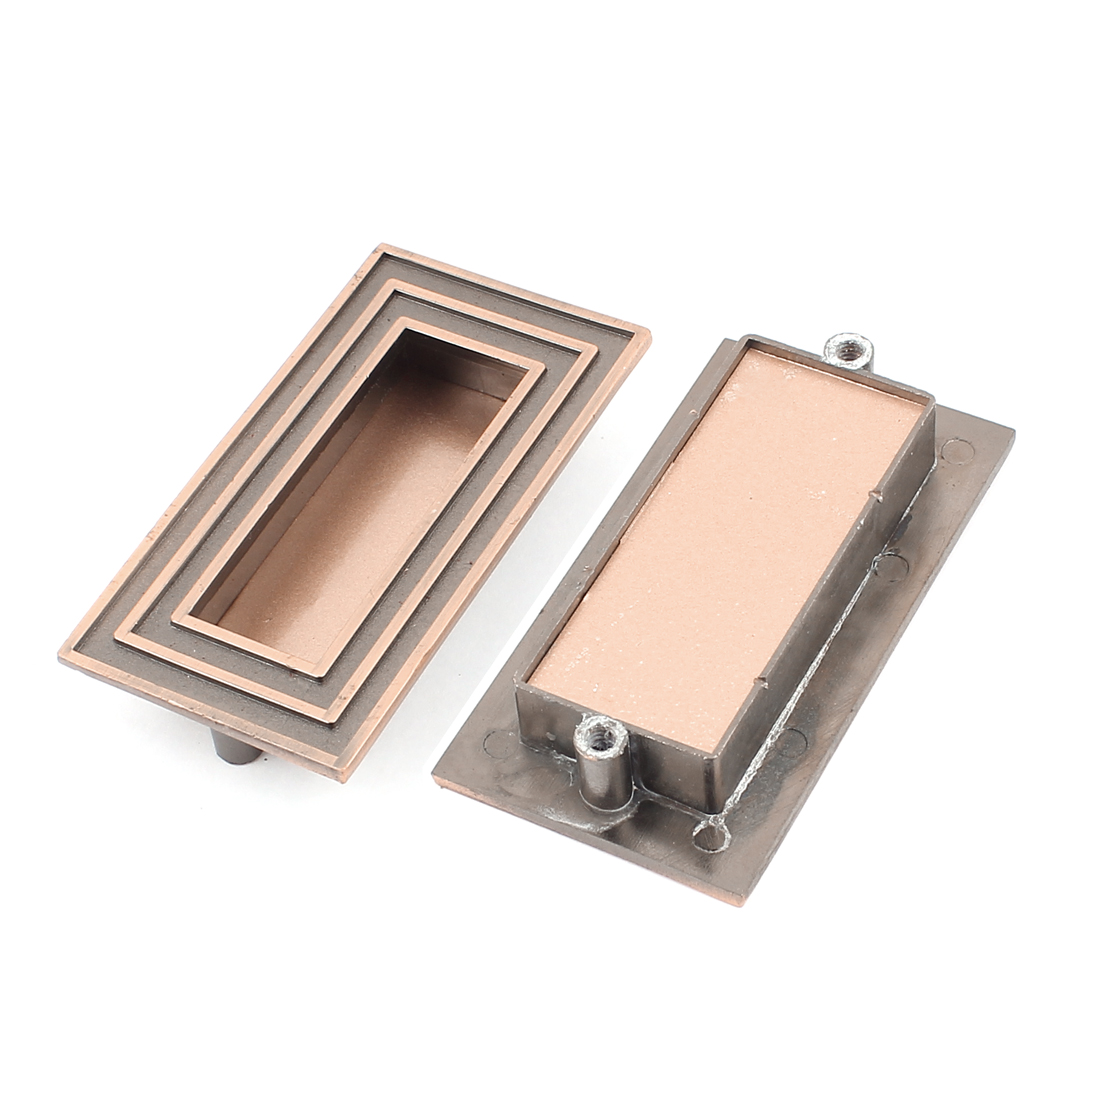 Furniture Hardware Groove Surface Metal Concealed Door Handle Copper Tone 2pcs